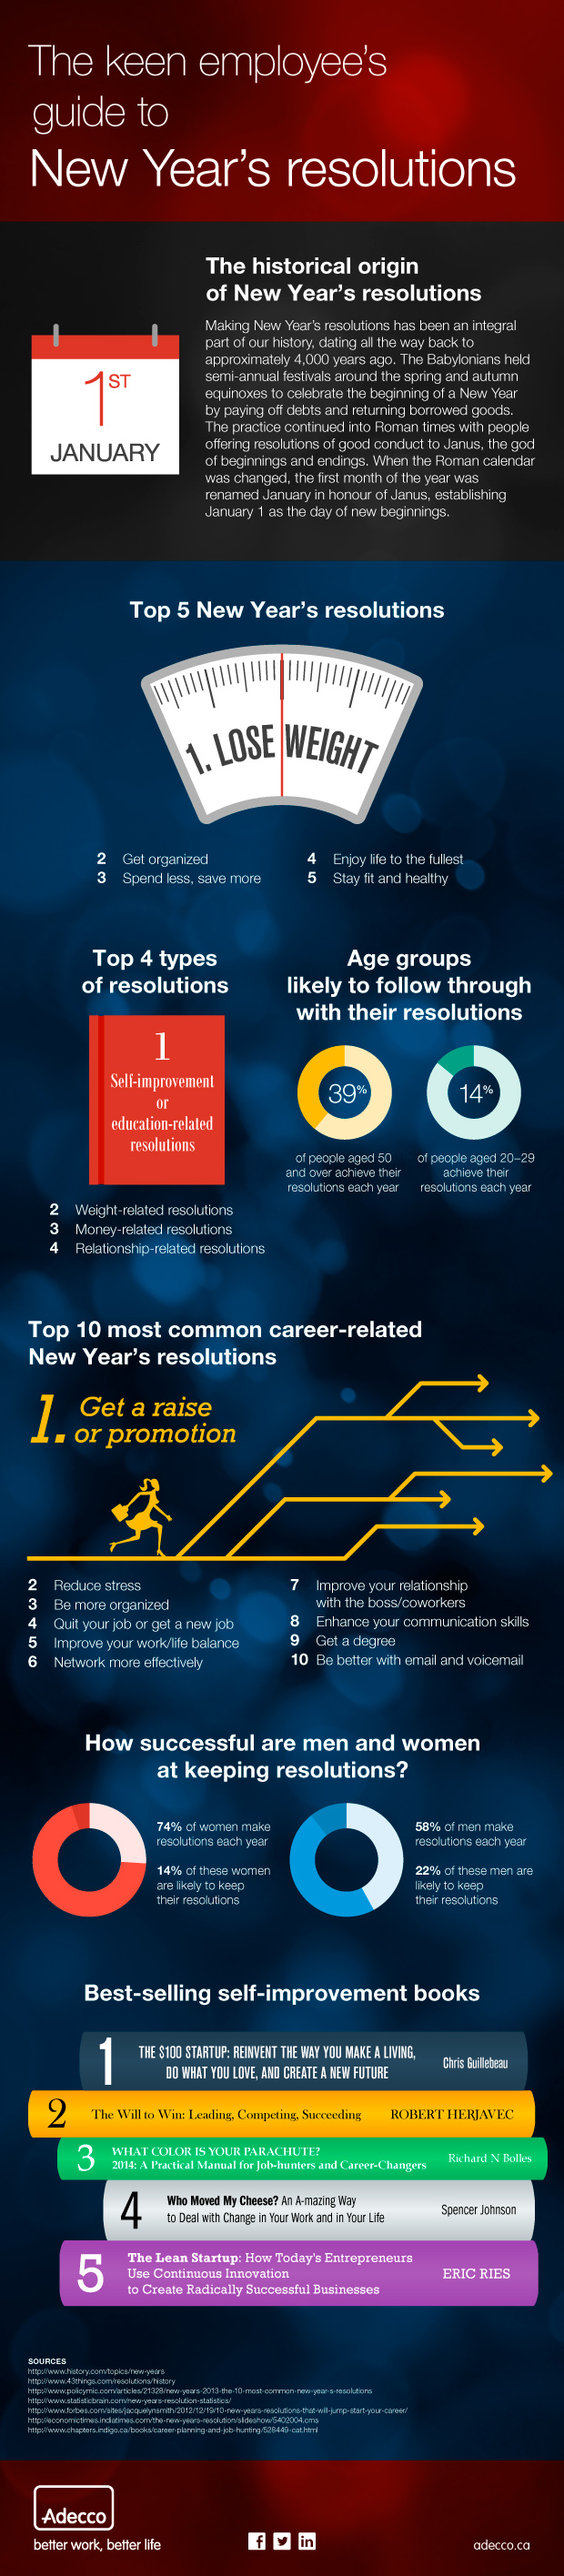 An infographic about new year's resolutions.